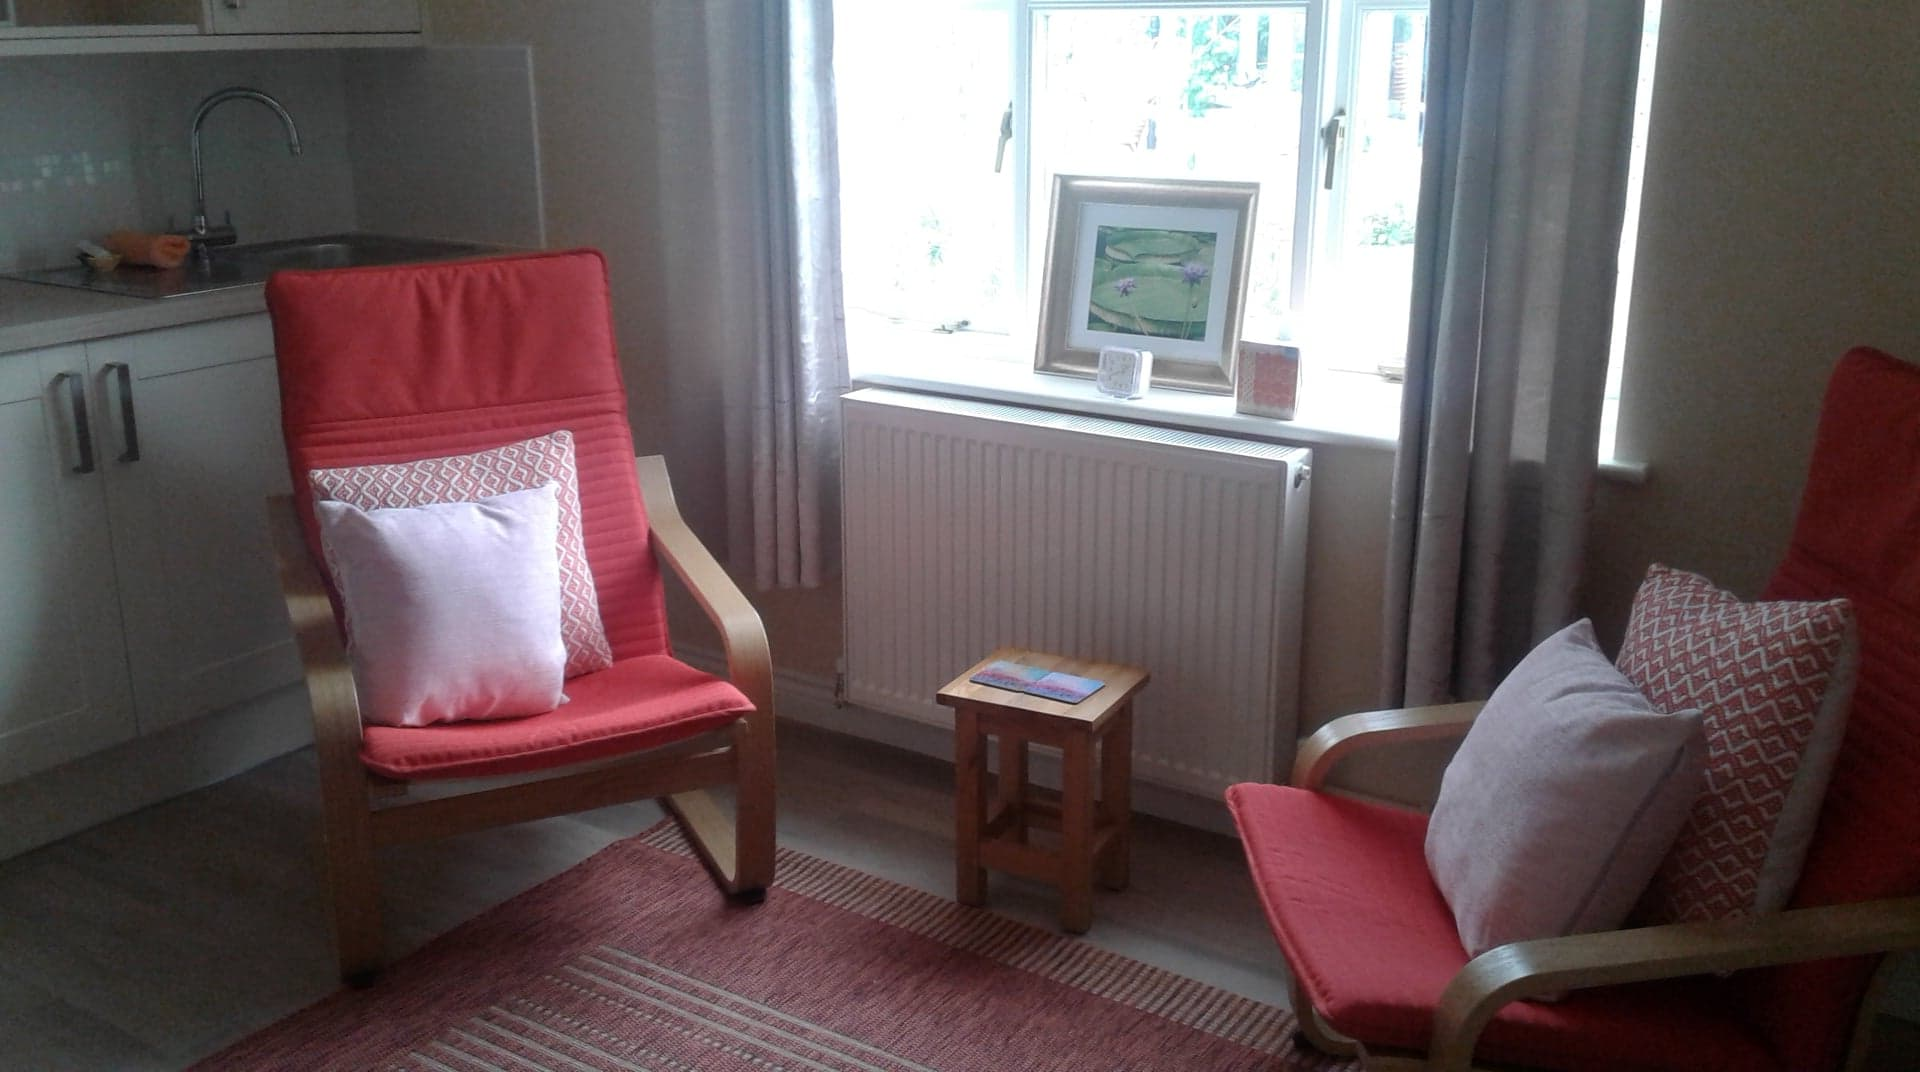 Our Peaceful Therapy Room